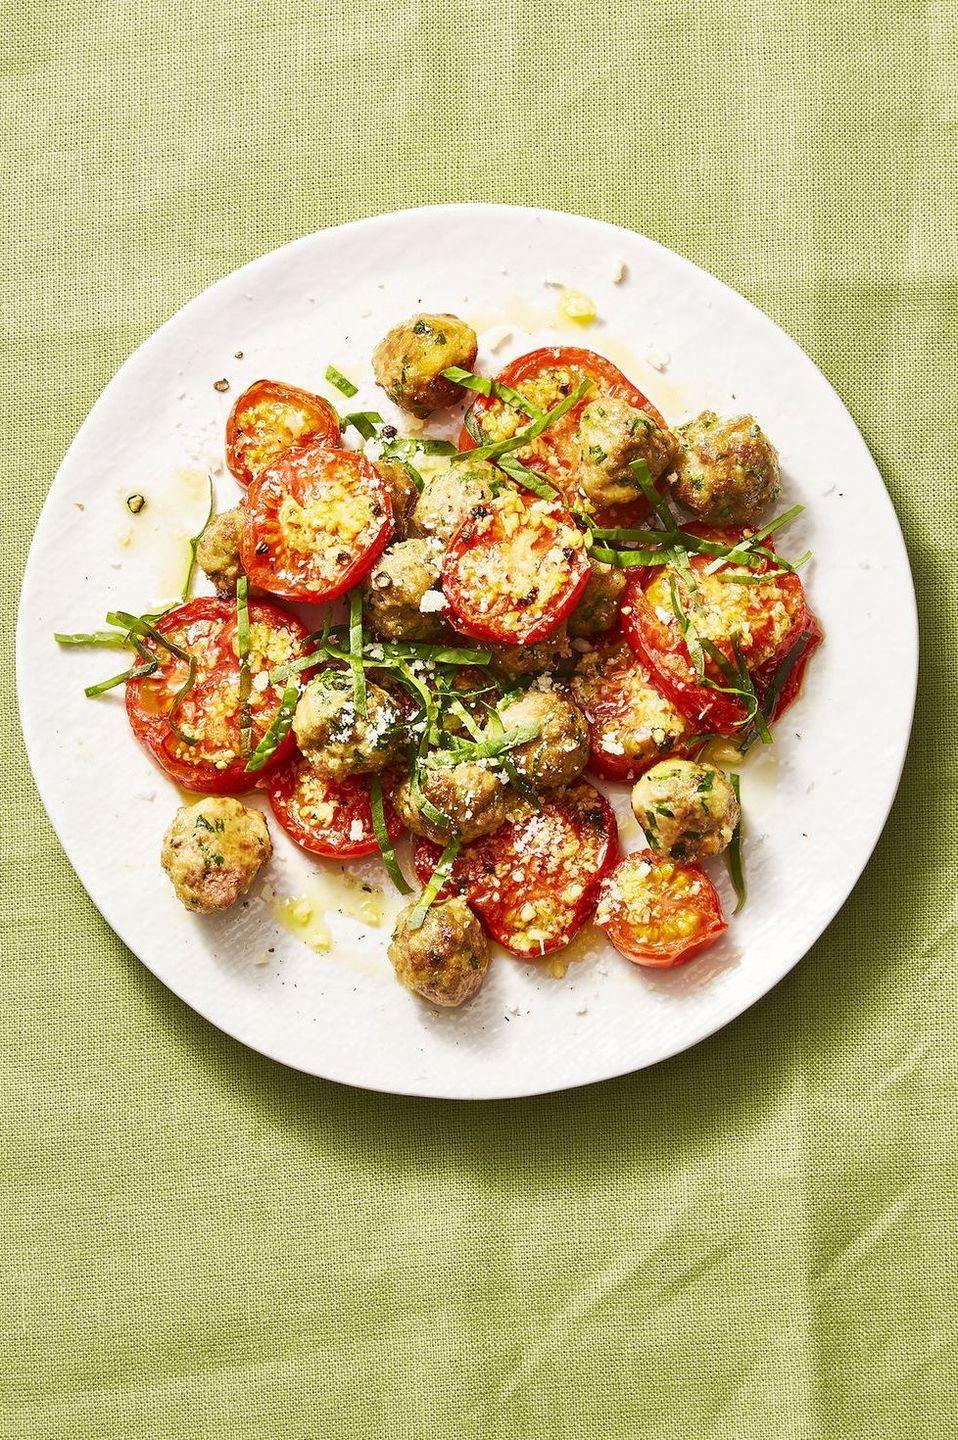 "<p>This easy dinner is made with ingredients you have in your pantry already. Add pasta for a fun and fresh take on spaghetti and meatballs.</p><p><em><a href=""https://www.goodhousekeeping.com/food-recipes/a28648640/mini-meatballs-garlic-tomatoes-recipe/"" rel=""nofollow noopener"" target=""_blank"" data-ylk=""slk:Get the recipe for Mini Meatballs With Garlicky Tomatoes »"" class=""link rapid-noclick-resp"">Get the recipe for Mini Meatballs With Garlicky Tomatoes »</a></em></p><p><strong>RELATED</strong><strong>:</strong> <a href=""https://www.goodhousekeeping.com/food-recipes/easy/g4215/meatball-recipes/"" rel=""nofollow noopener"" target=""_blank"" data-ylk=""slk:51 Delicious Ways to Have Meatballs for Dinner"" class=""link rapid-noclick-resp"">51 Delicious Ways to Have Meatballs for Dinner</a><br></p>"